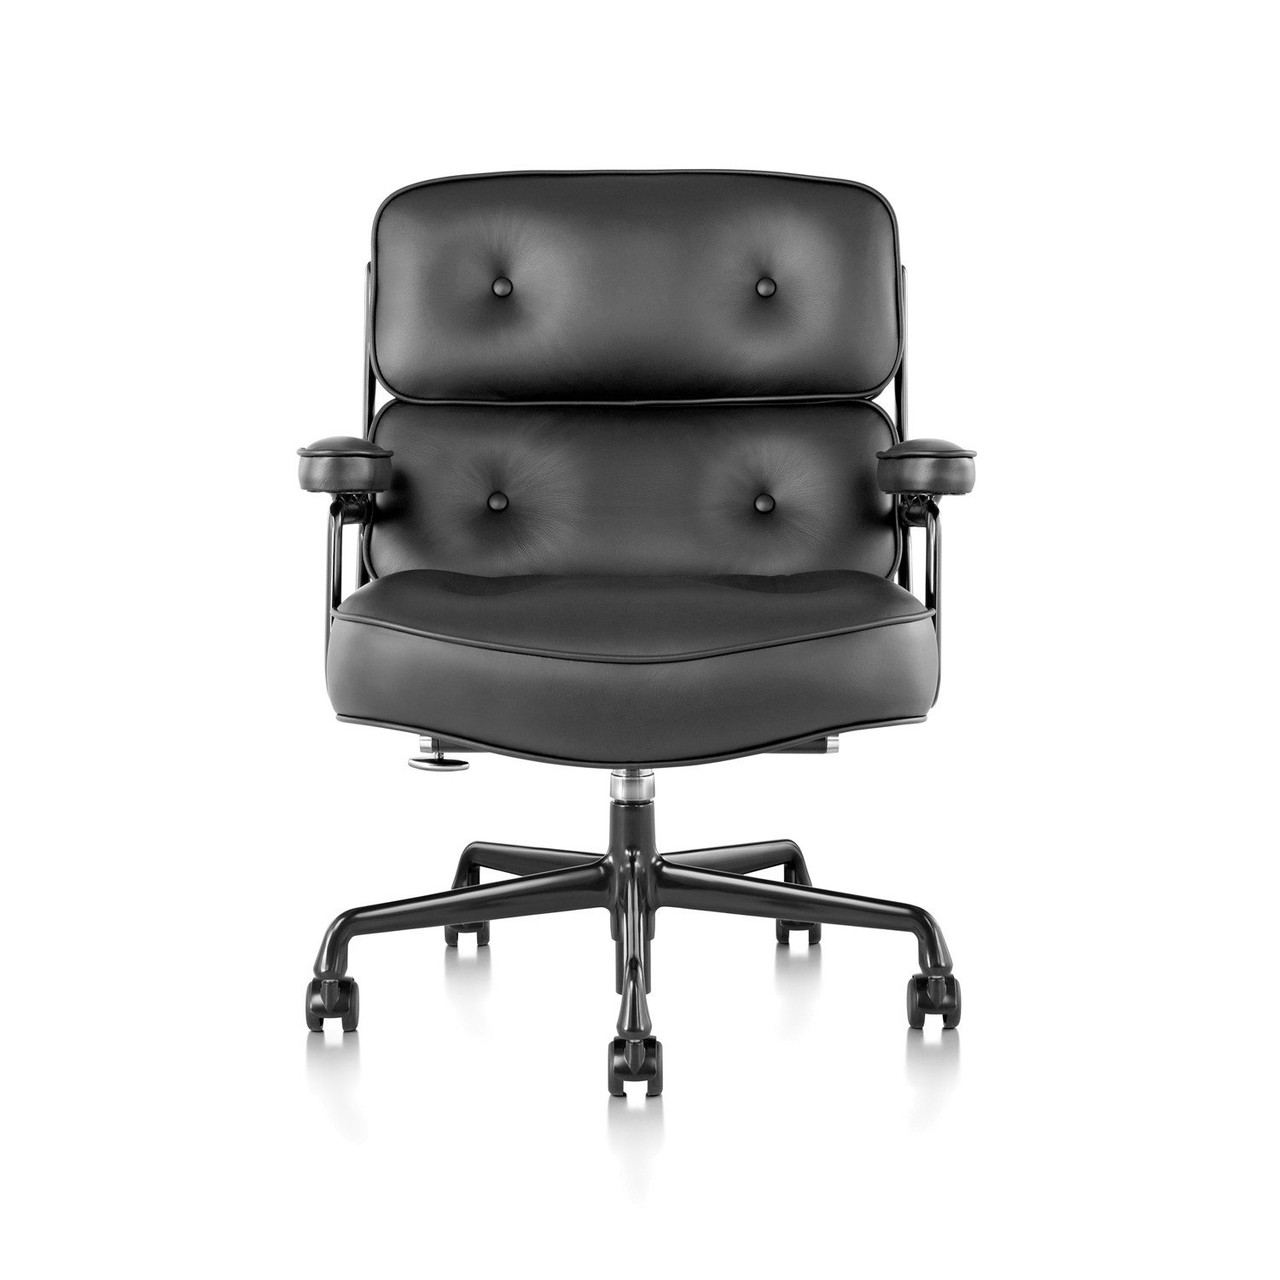 Eames Executive Chair by Herman Miller